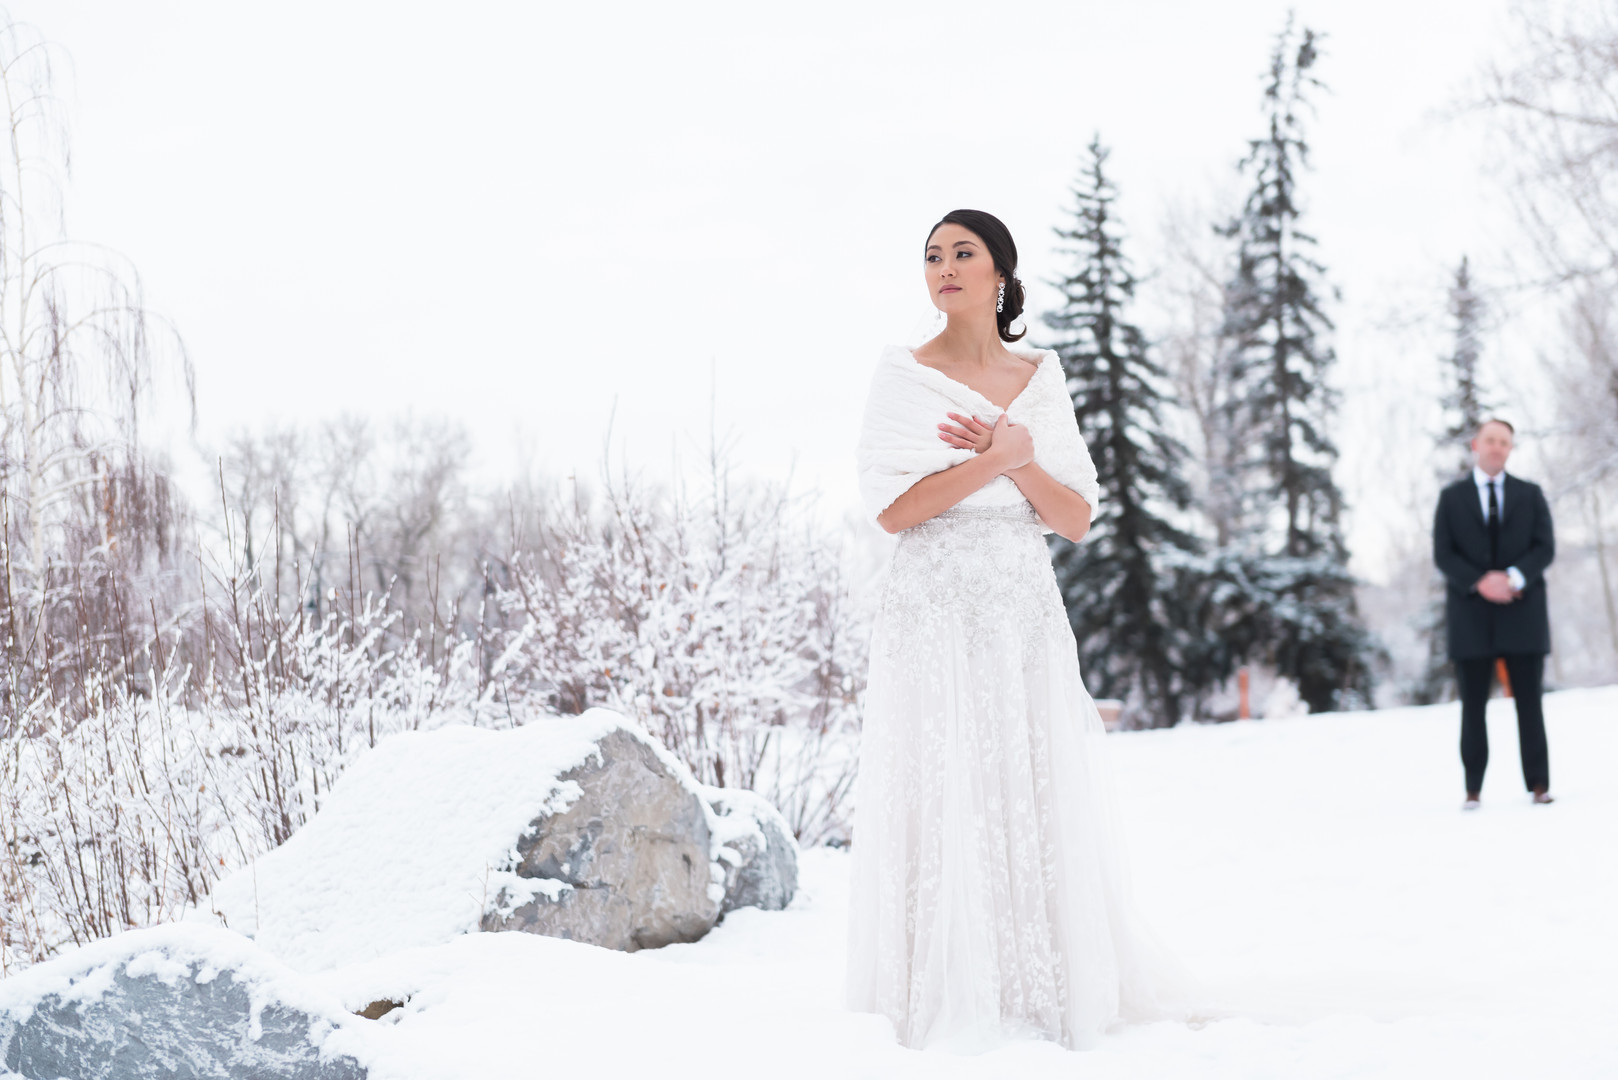 Winter weddings are stunning!